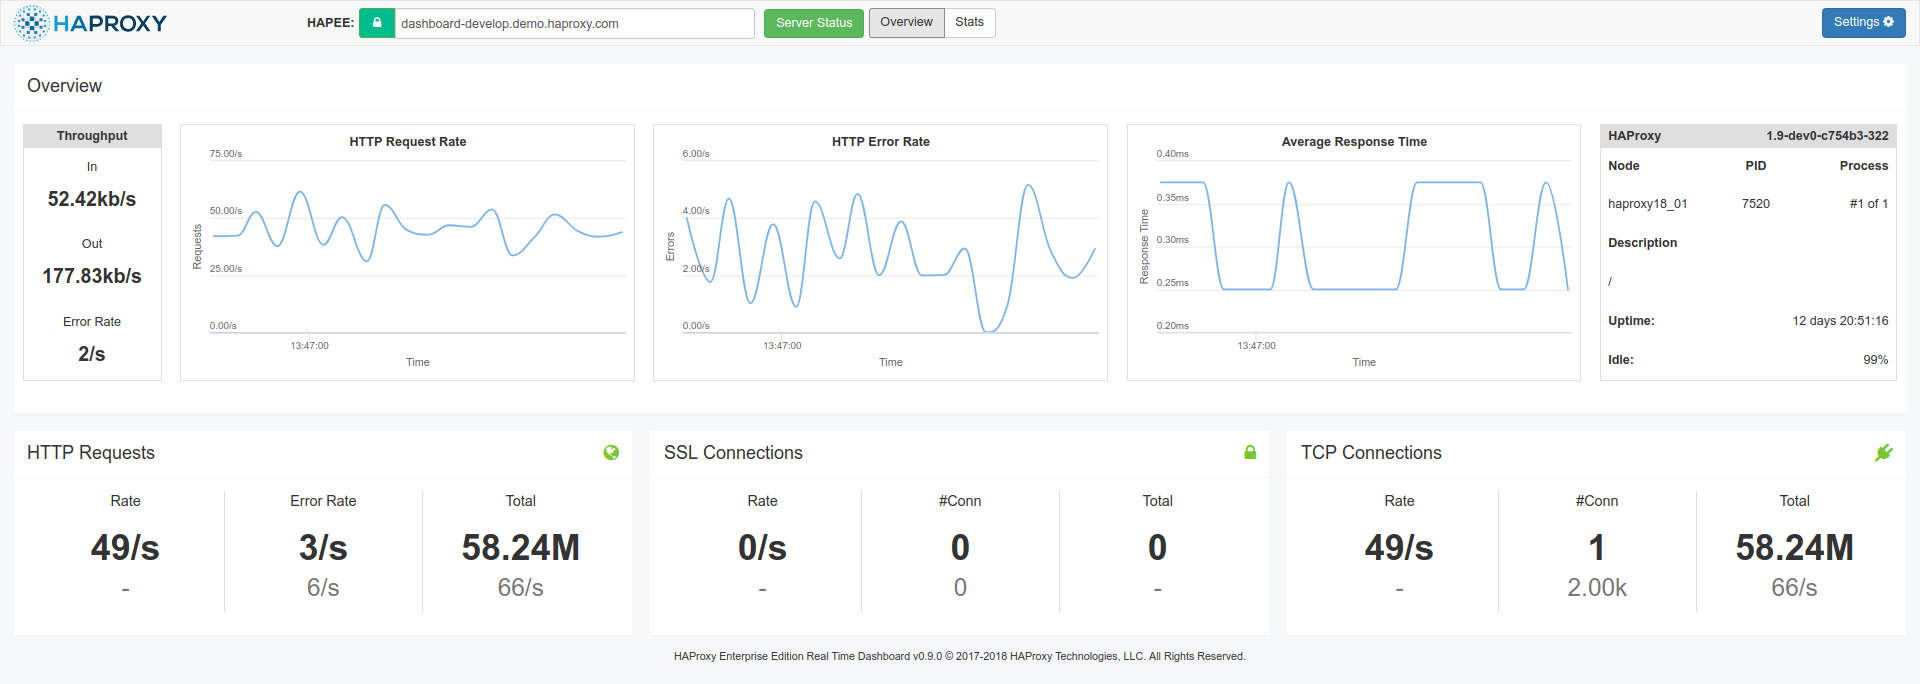 haproxy real-time dashboard